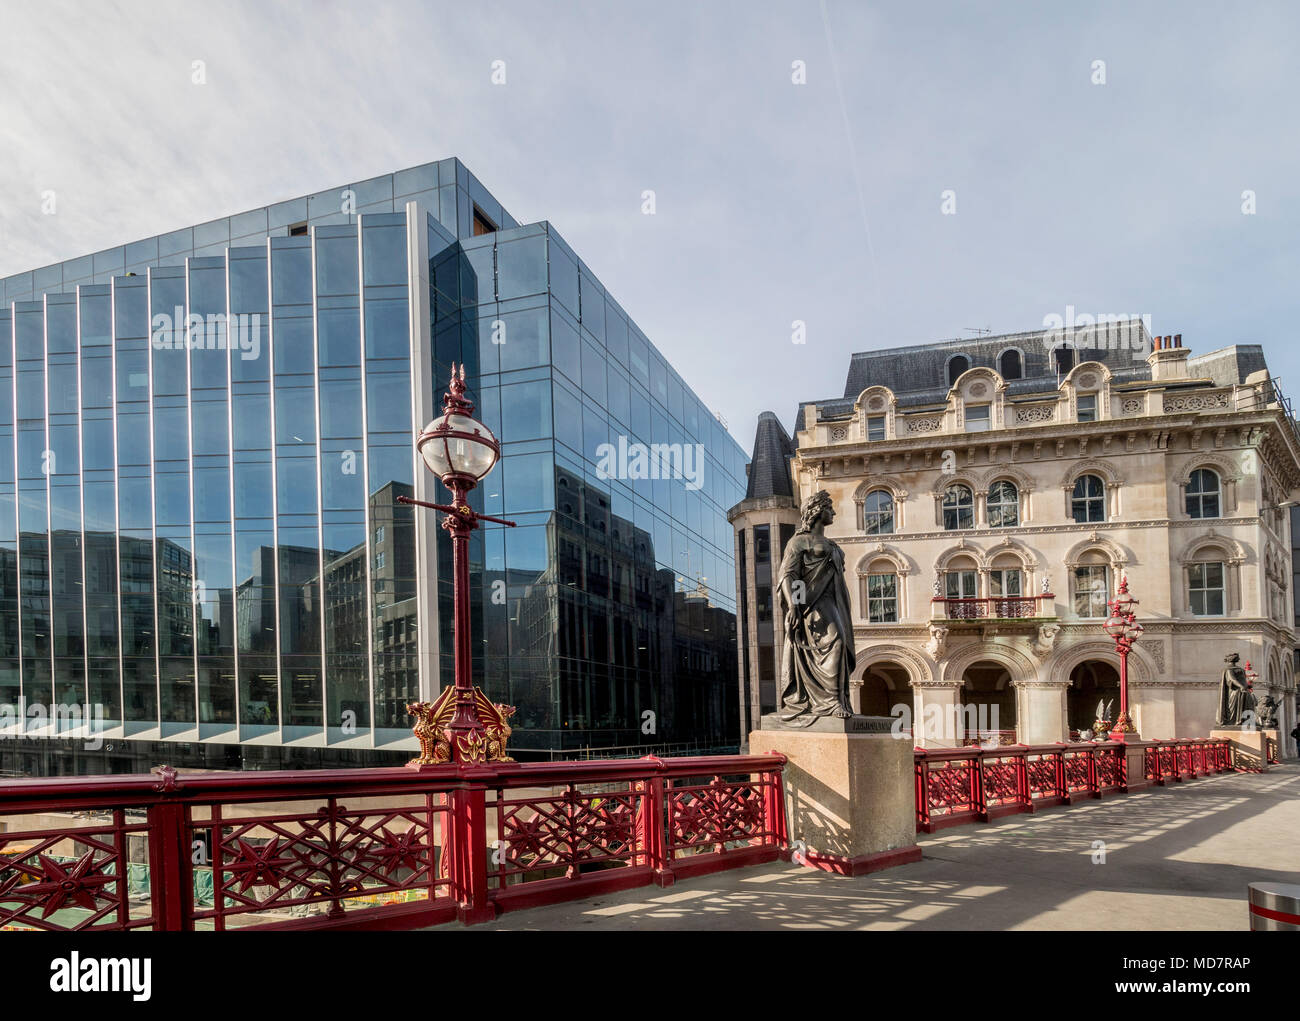 Holborn Viaduct, a cast-iron girder bridge in London and the name of the street which crosses it, UK. - Stock Image